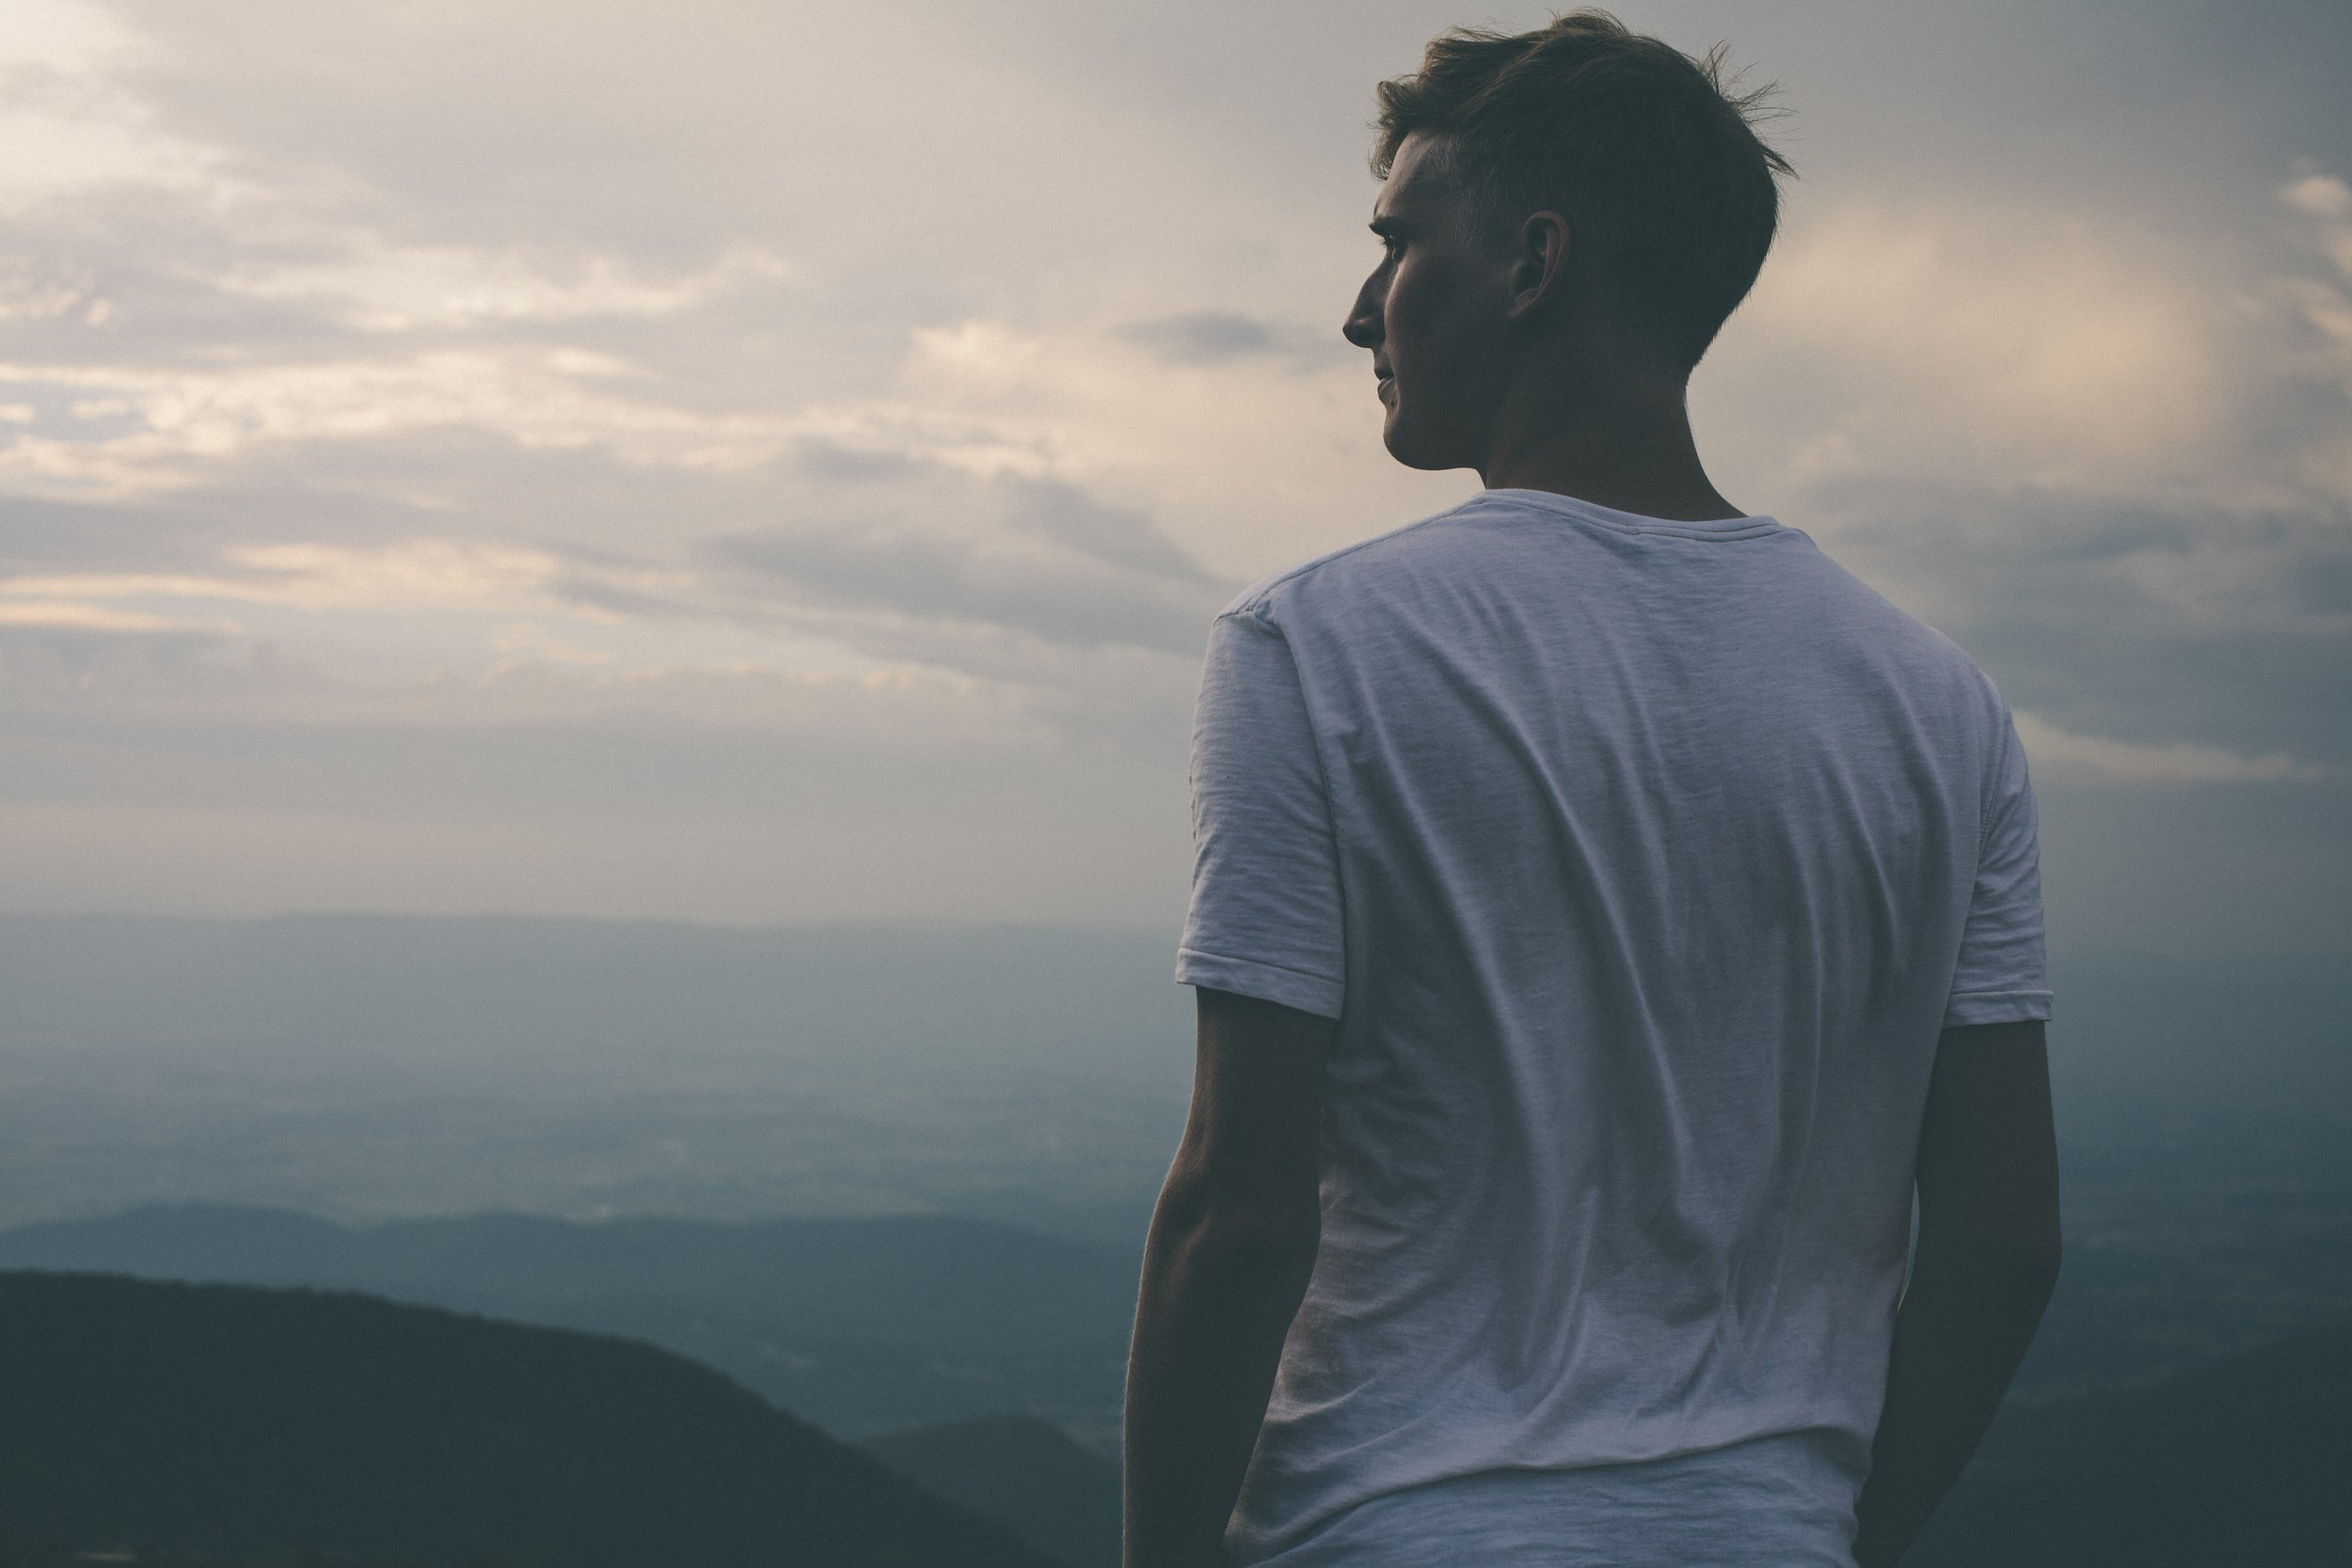 man-overlooking-mountains-thinking-about-success